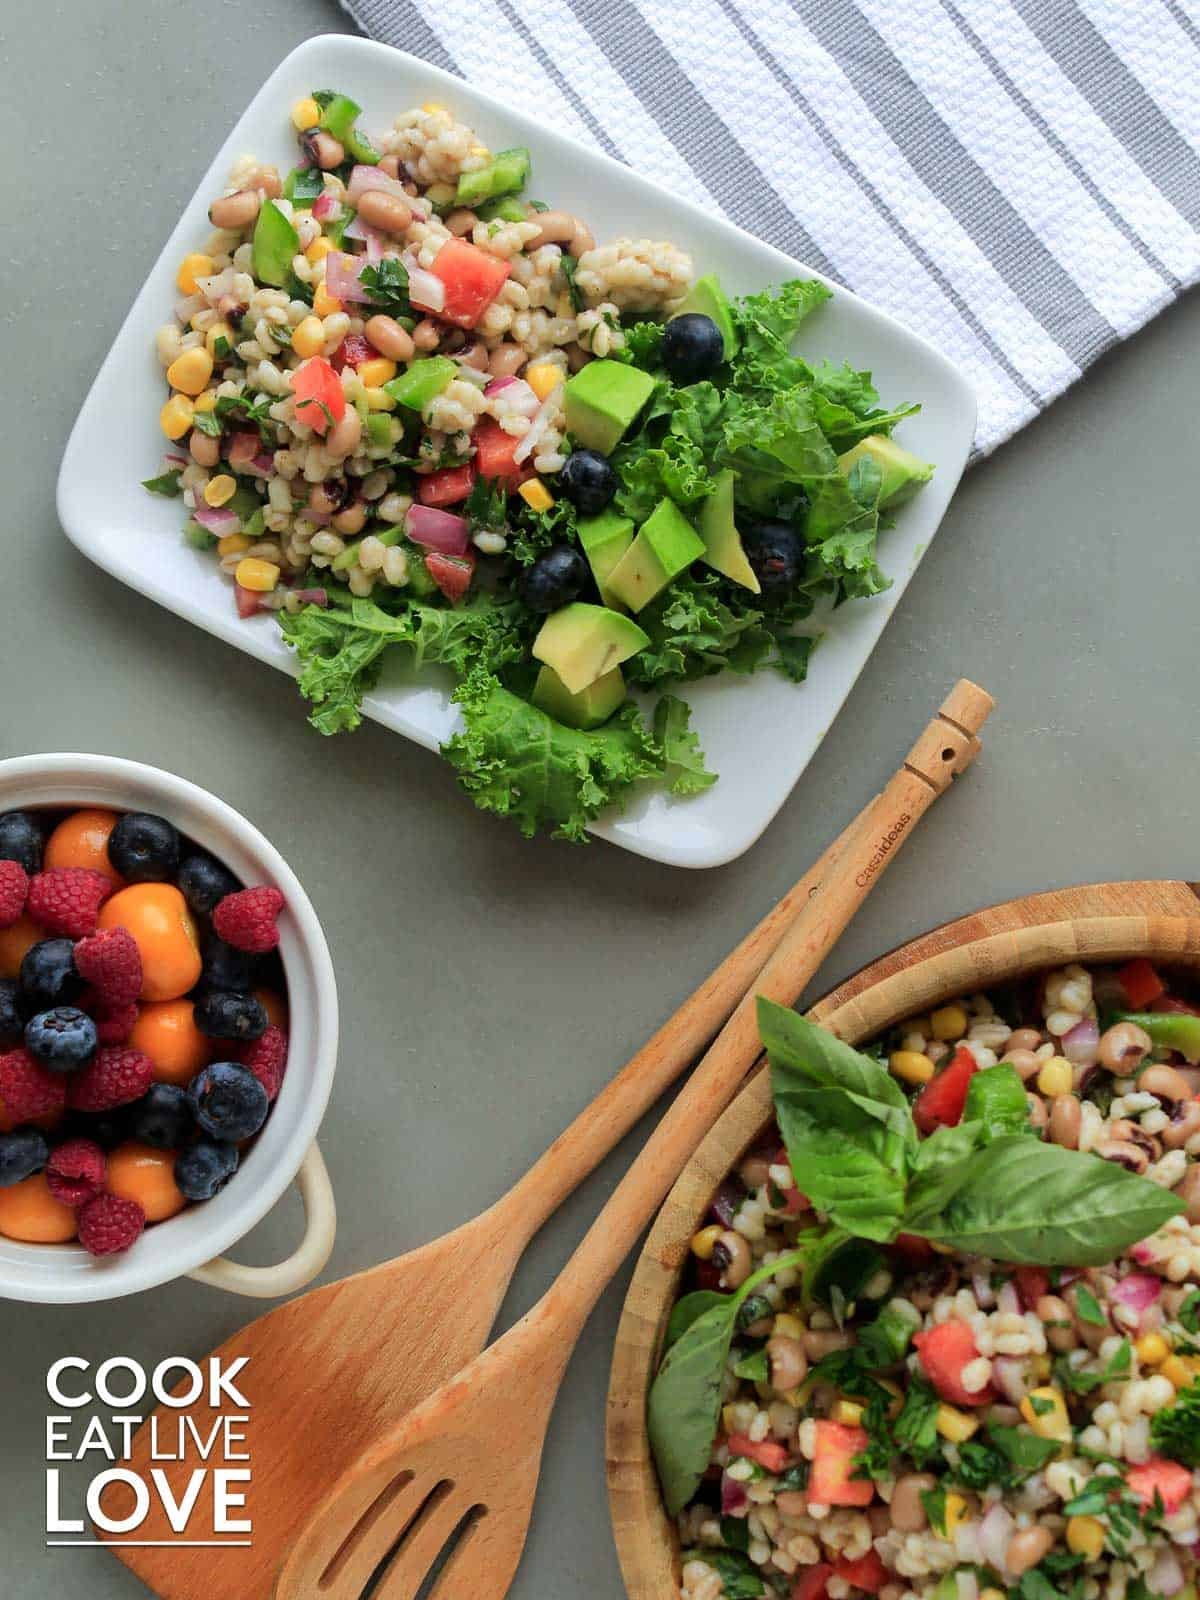 Barley salad served up on a plate with a bowl of salad to the side